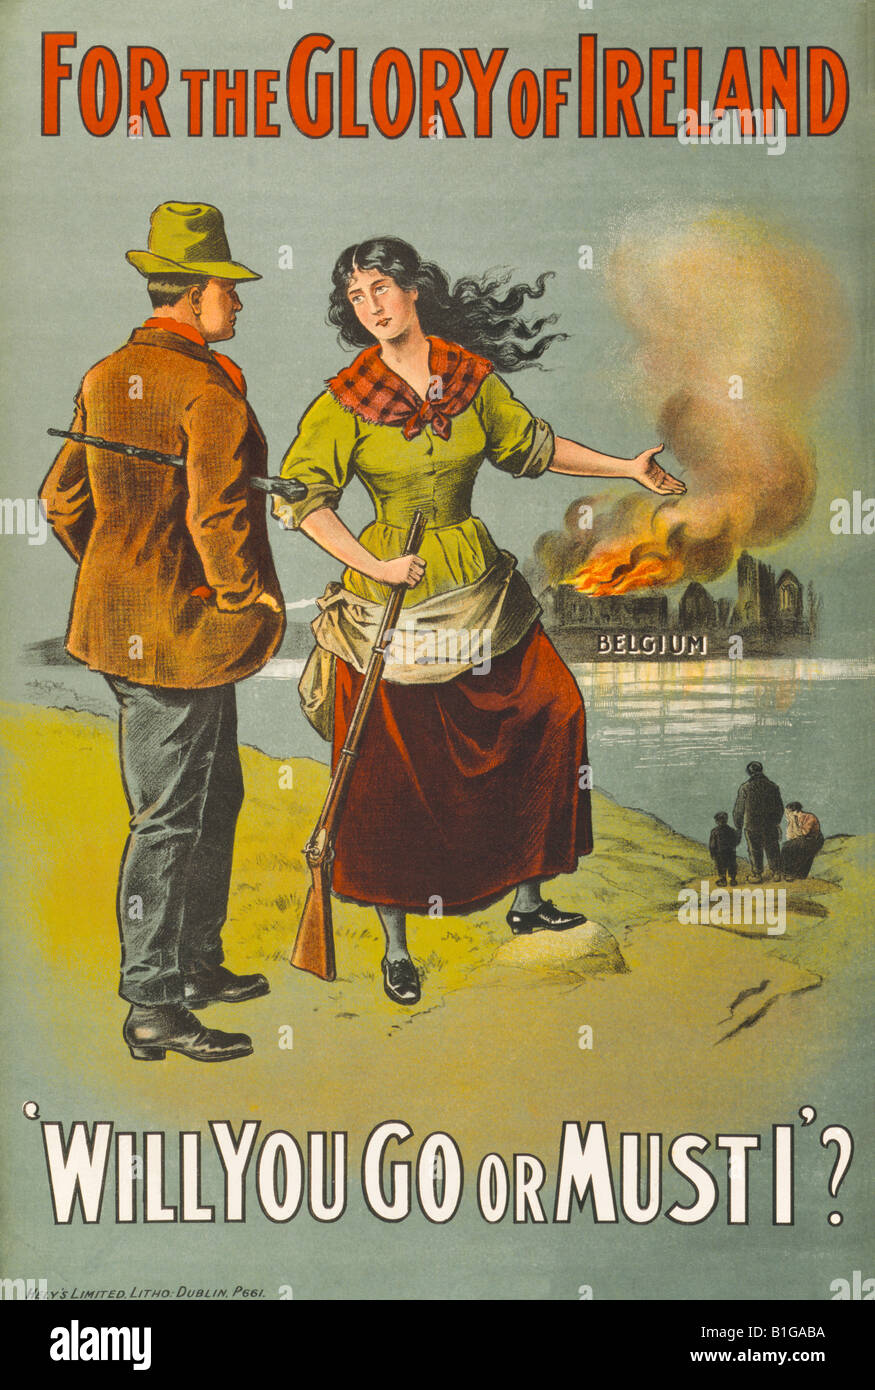 First World War chromolithographic recruiting poster printed in Dublin and aimed at convincing young Irishmen to - Stock Image